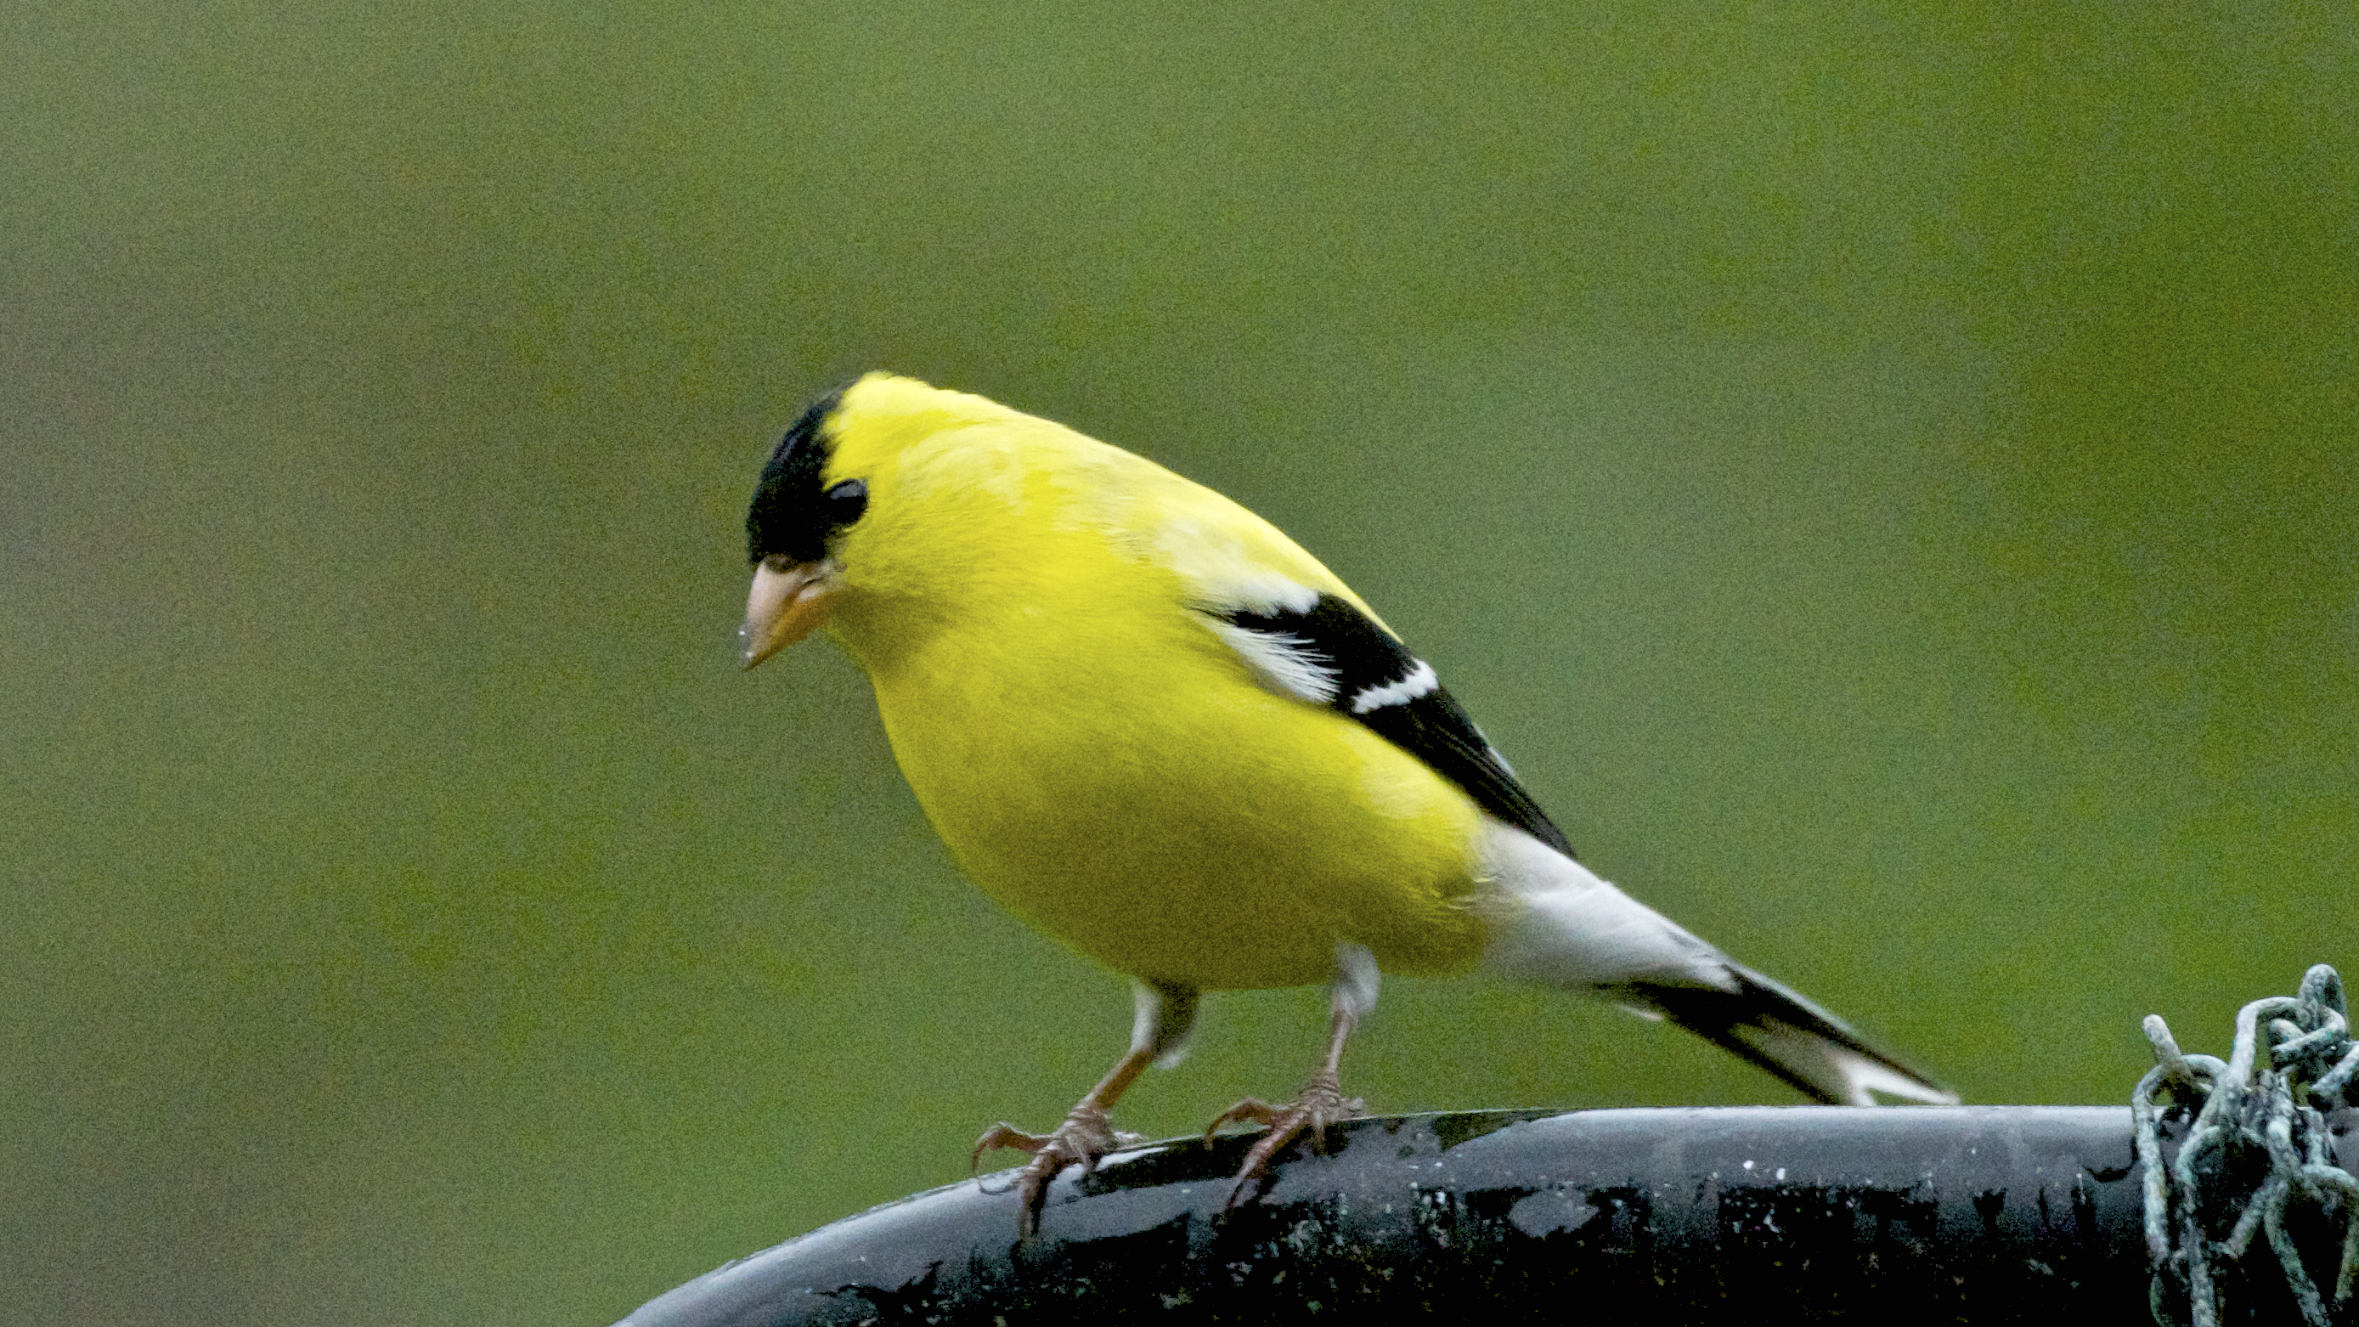 American Goldfinch after molting process. (Breeding plumage)